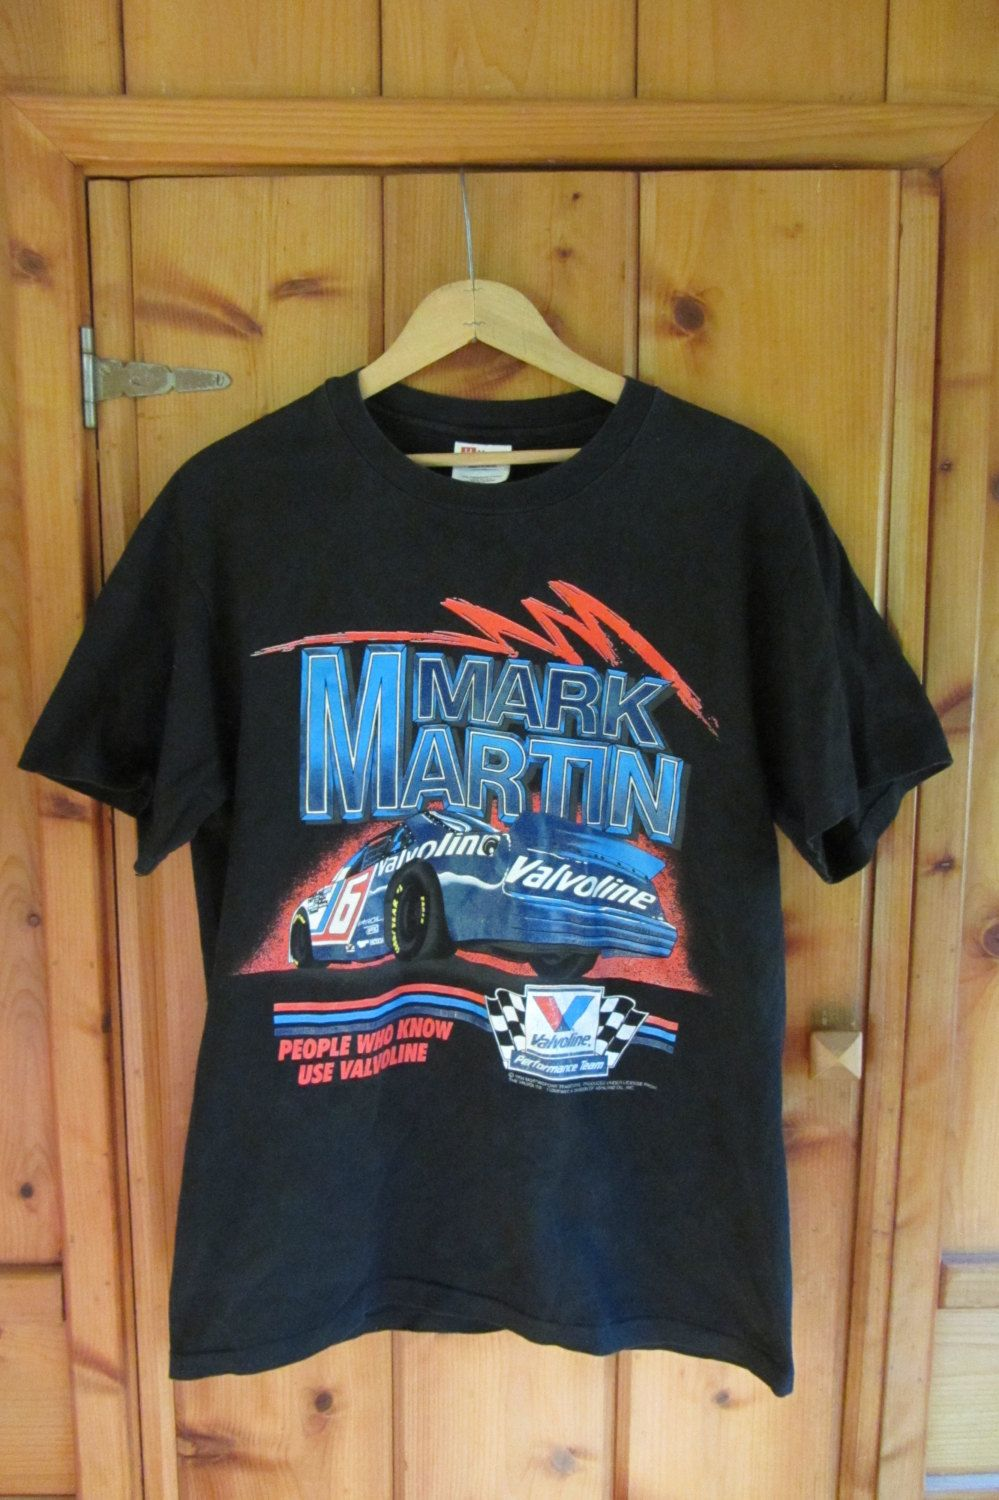 dd9224099 This is a really nice vintage 90s Mark Martin NASCAR t-shirt. This shirt